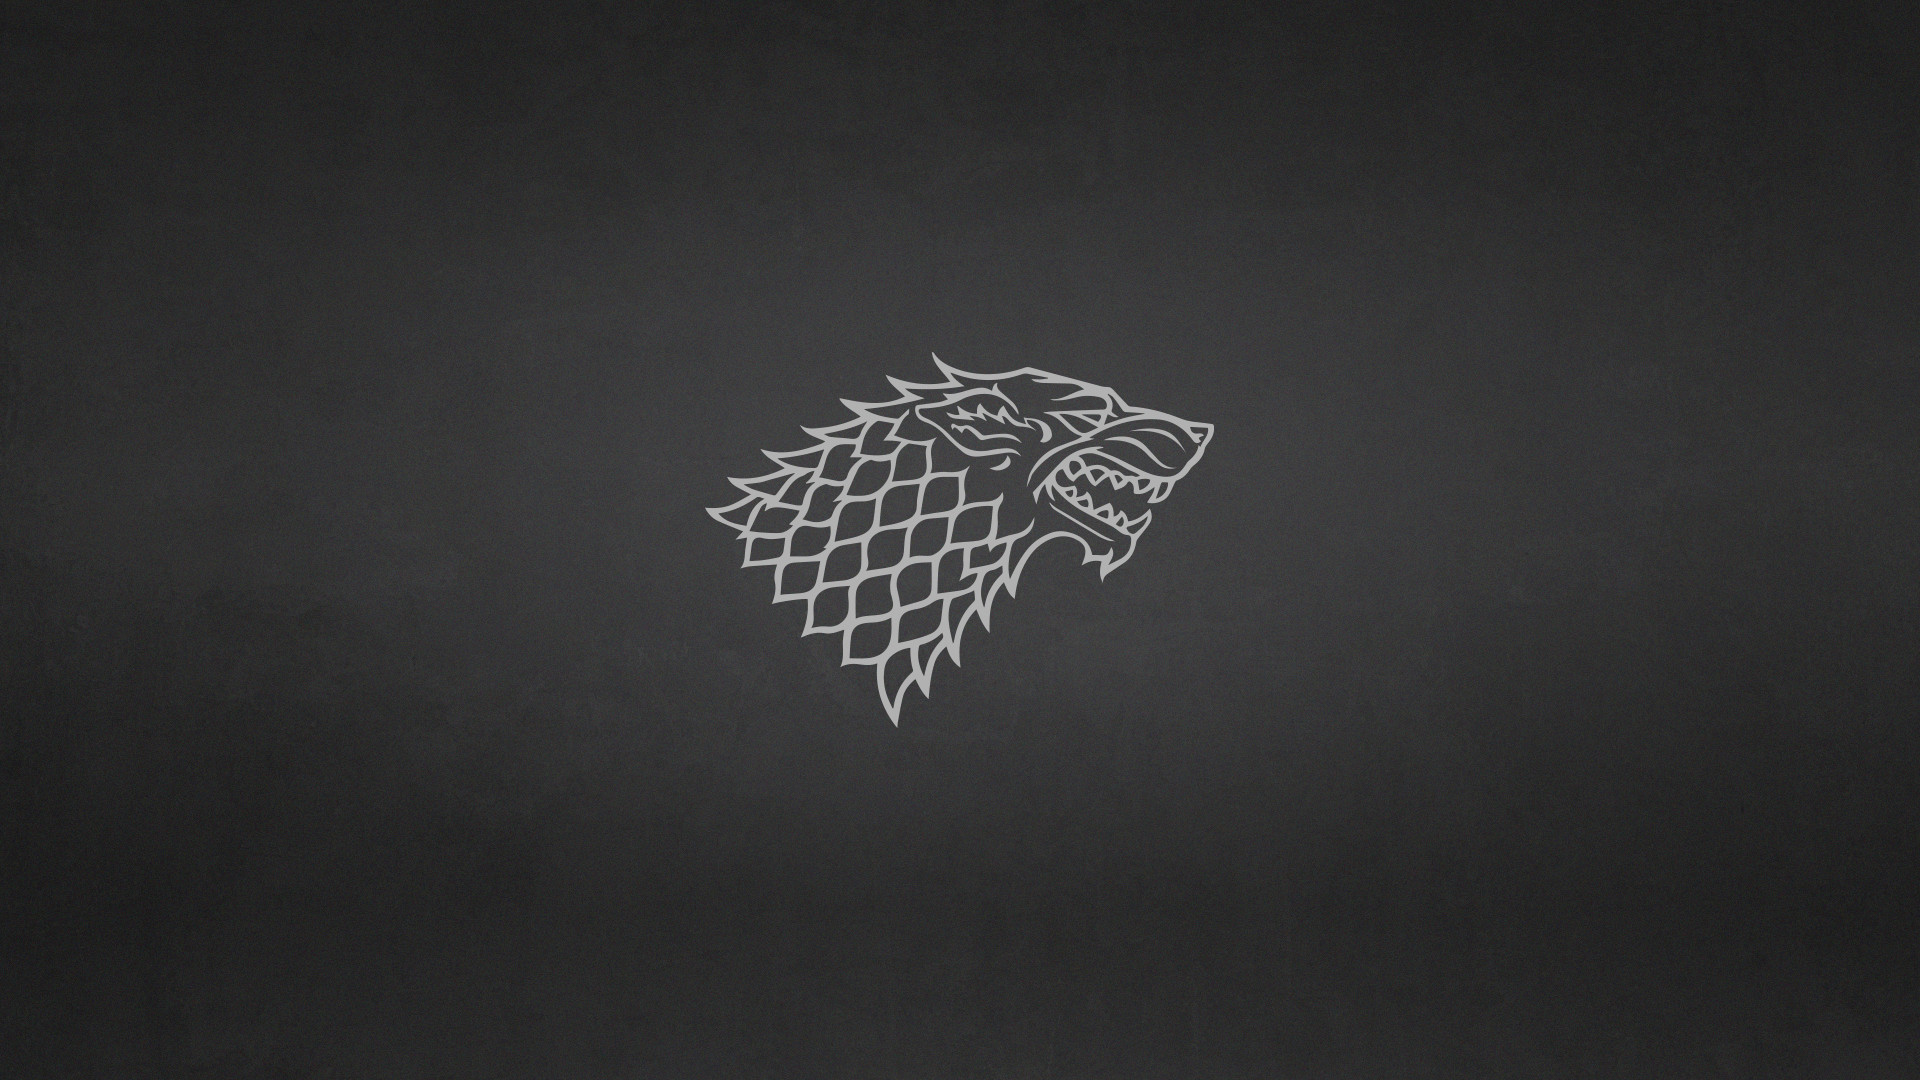 1920x1080 ... Game of Thrones: House Stark Minimalist Wallpaper by elbarnzo